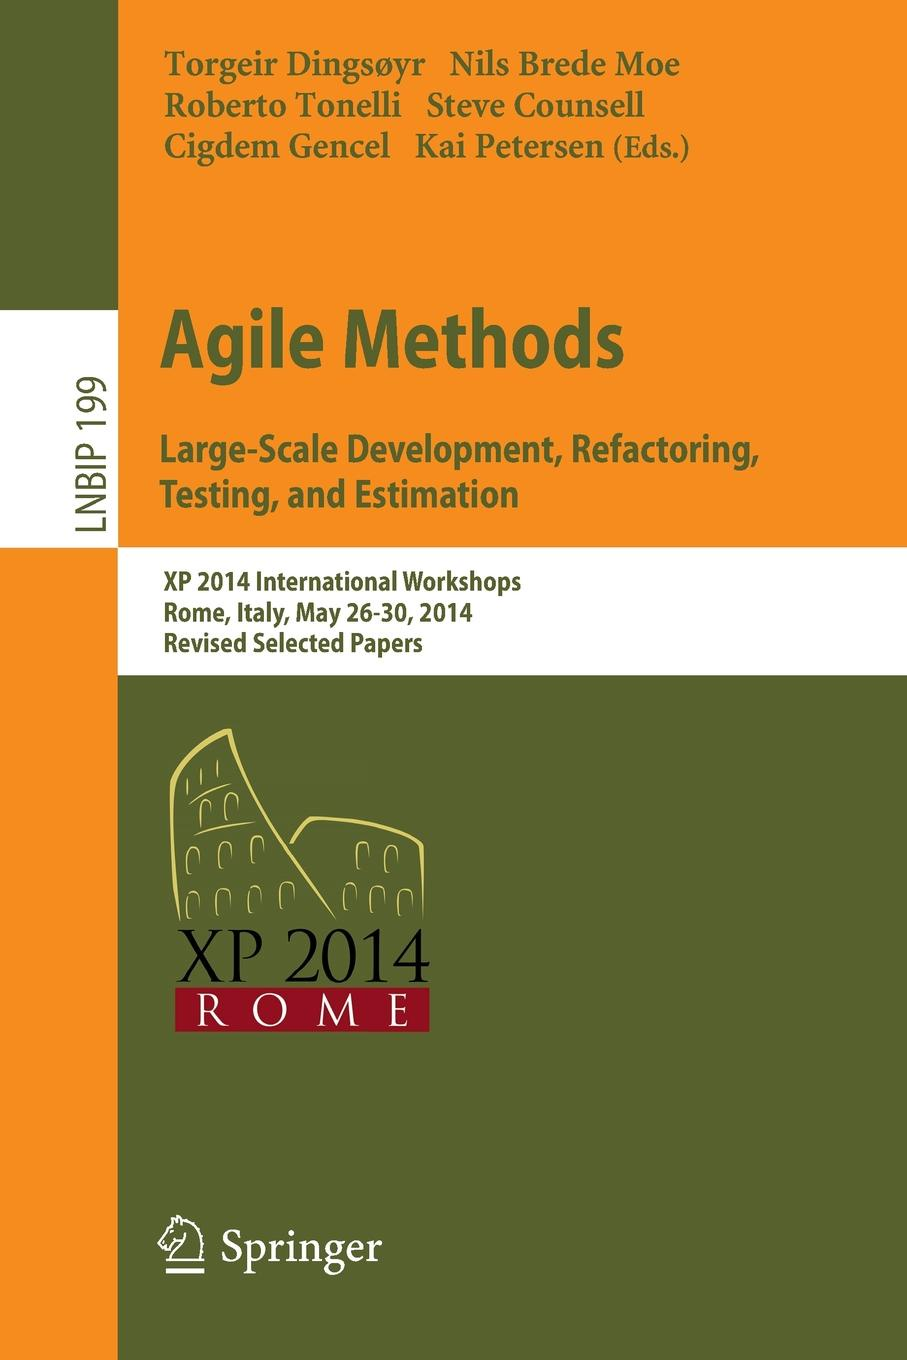 лучшая цена Agile Methods. Large-Scale Development, Refactoring, Testing, and Estimation. XP 2014 International Workshops, Rome, Italy, May 26-30, 2014, Revised Selected Papers